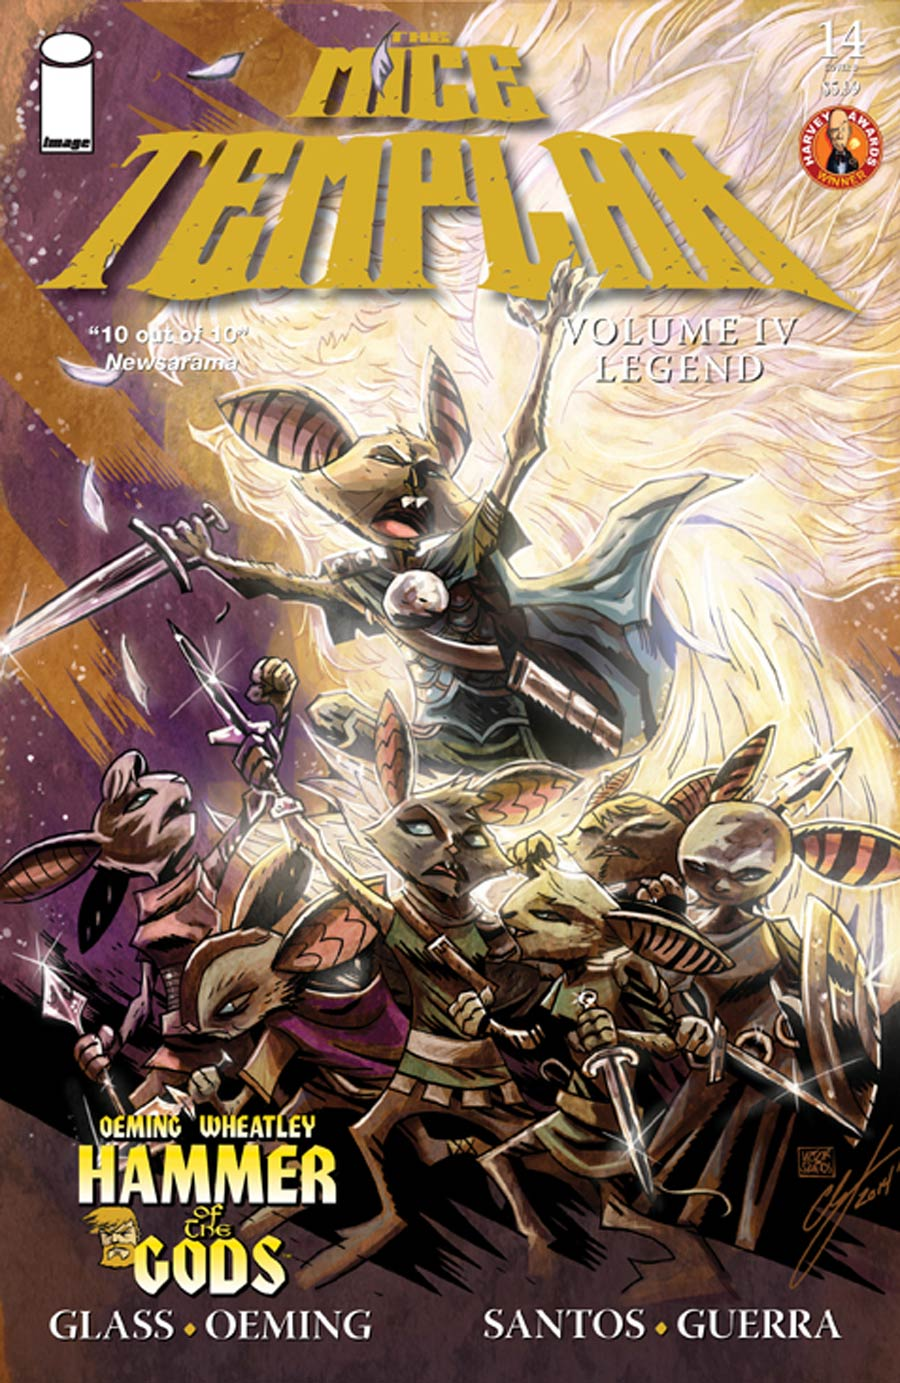 Mice Templar Vol 4 Legend #14 Cover B Variant Victor Santos & Chandra Free Cover